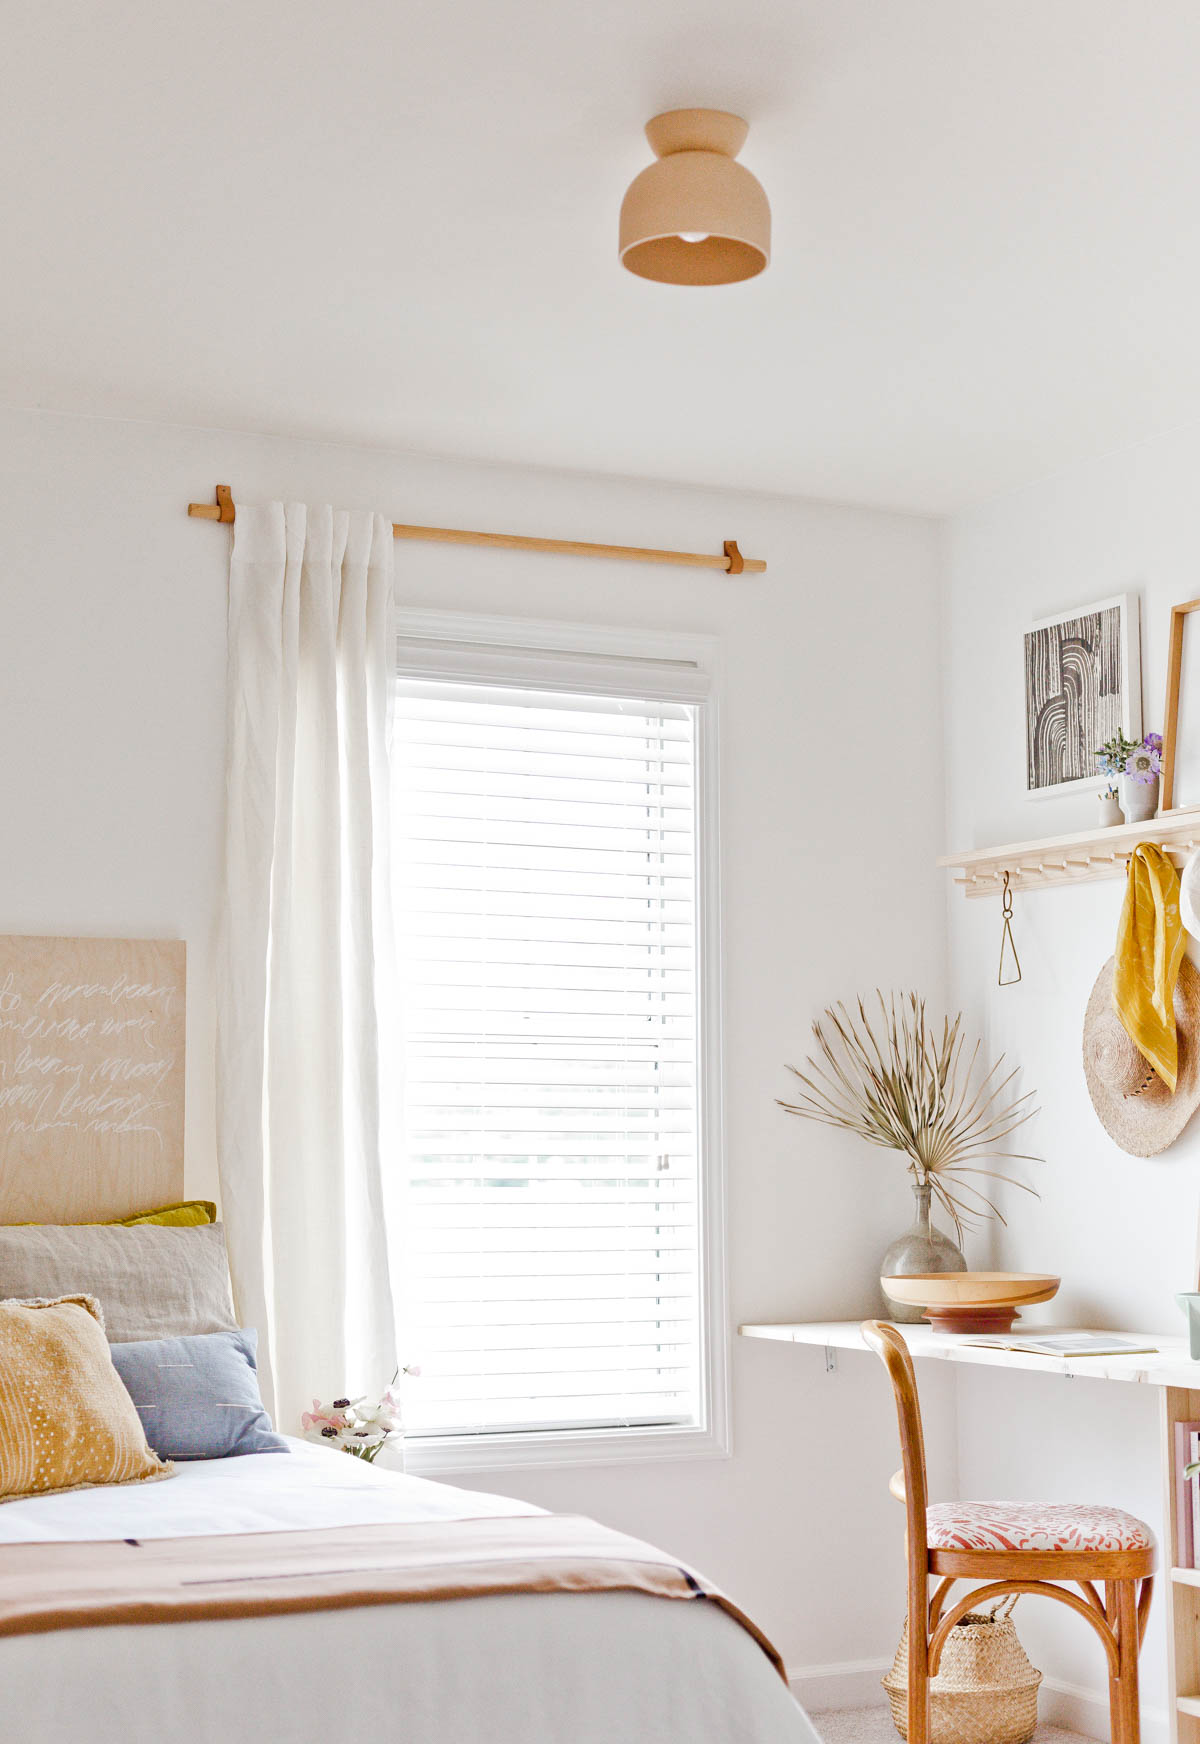 - Design Crush: A Renter-Friendly Guest Room/ Home Office